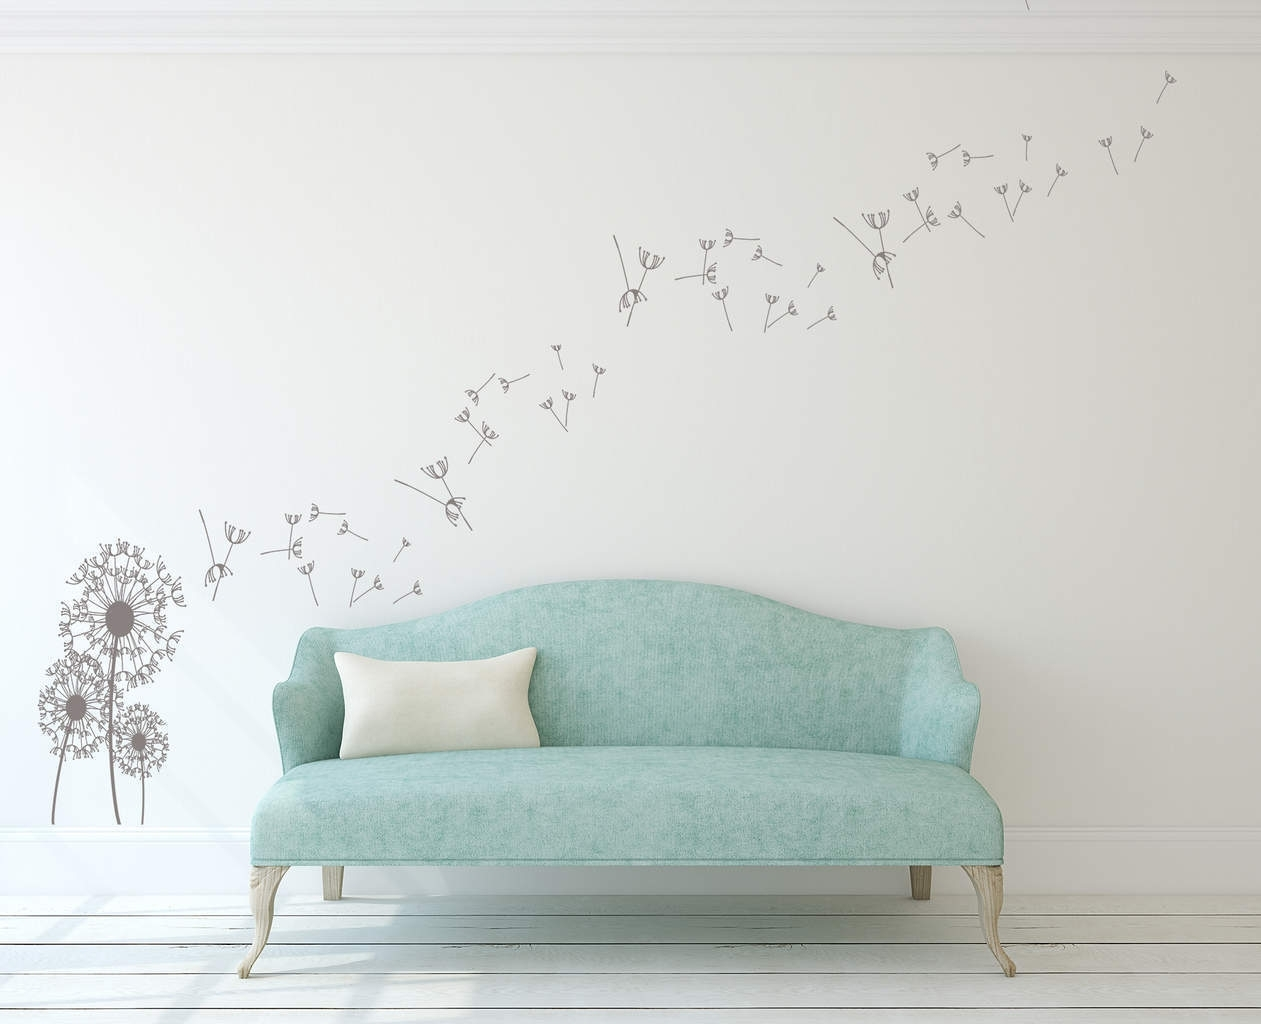 Dandelion Wall Art Decal | Dandelion Wall Decal Sticker Intended For Latest Dandelion Wall Art (View 9 of 20)